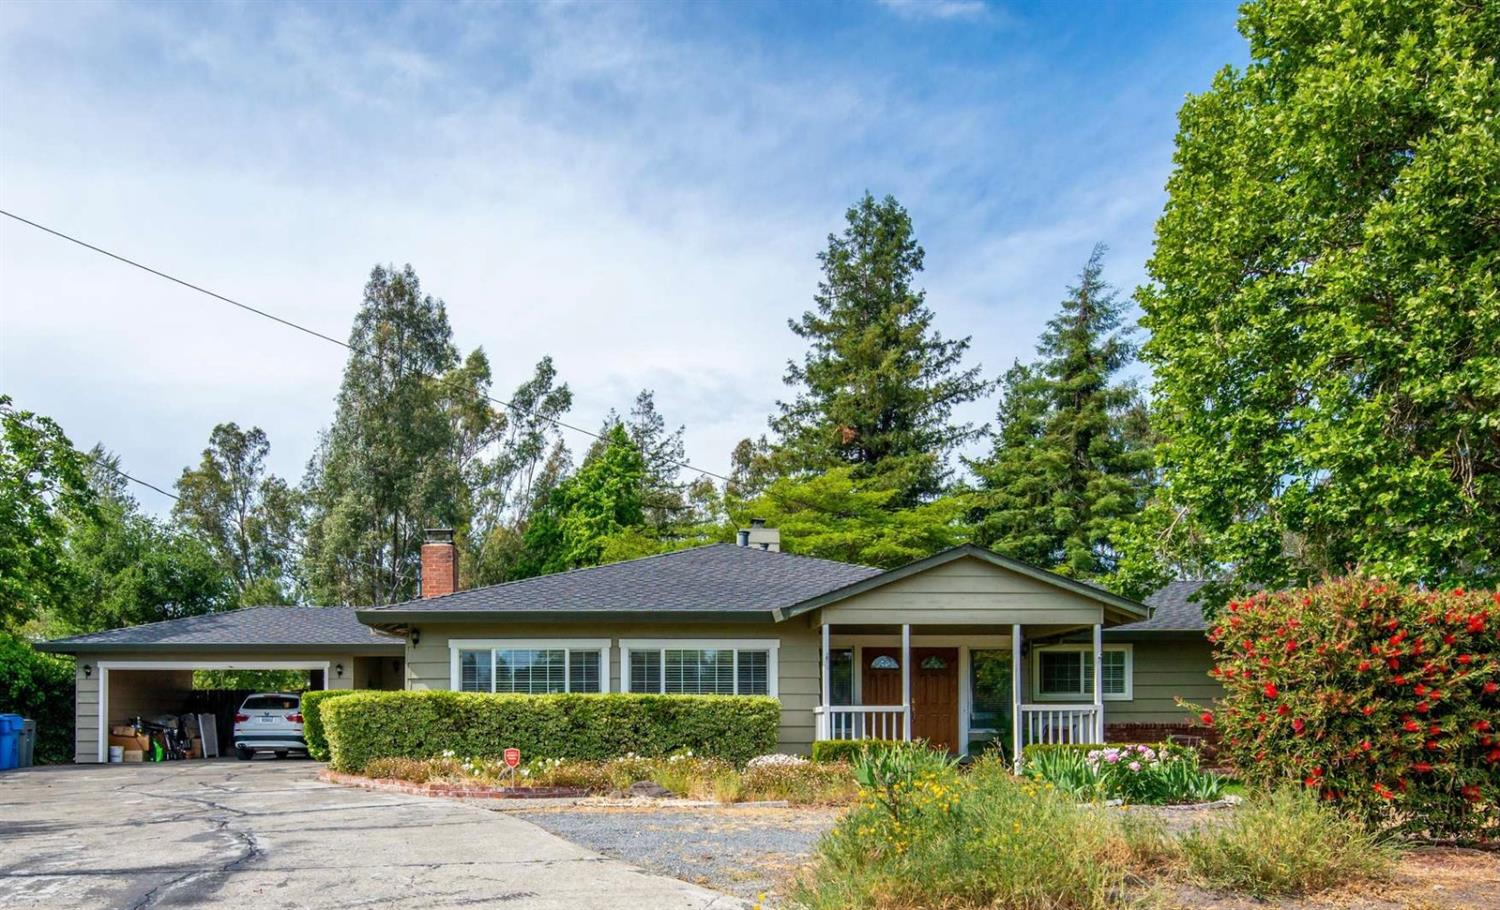 Photo of 2185 Floral Way, Out Of Area, CA 95403